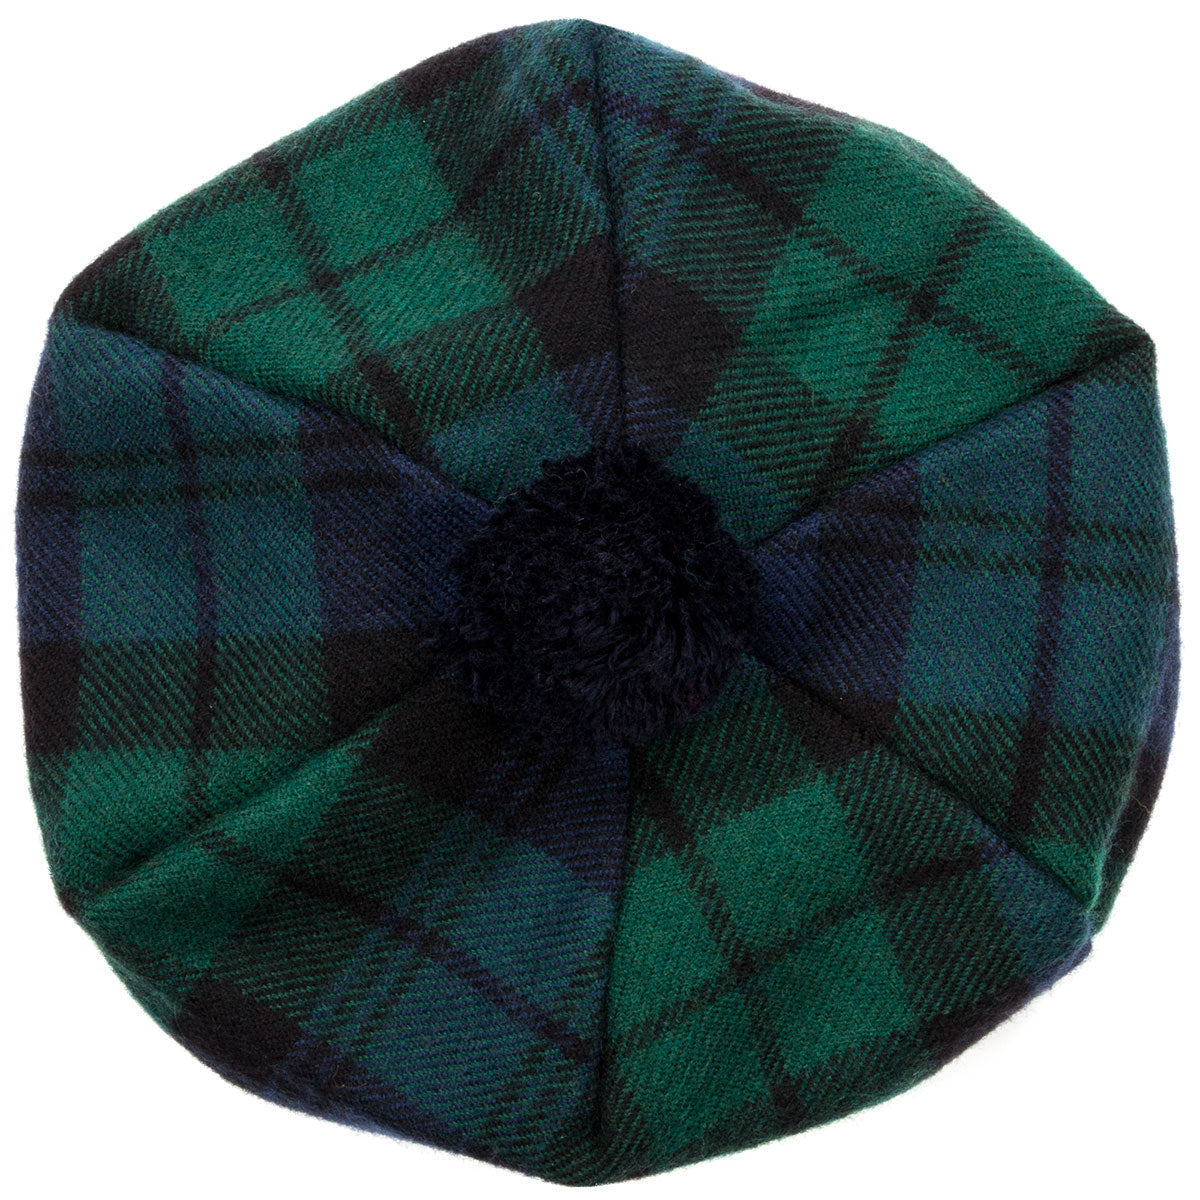 Black Watch Tartan tam